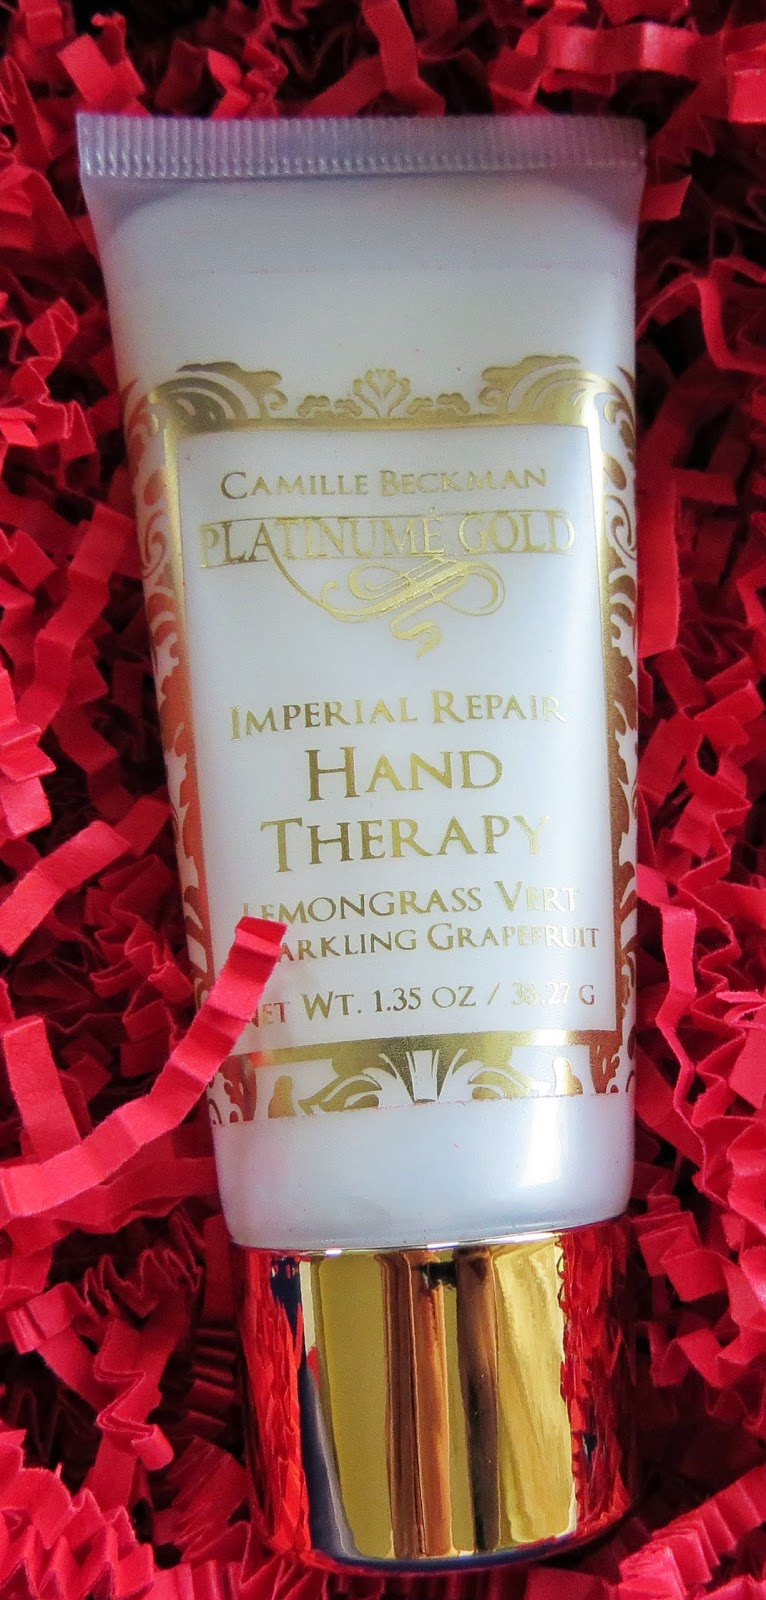 Camille Beckman Platinume Gold Imperial Repair Hand Therapy